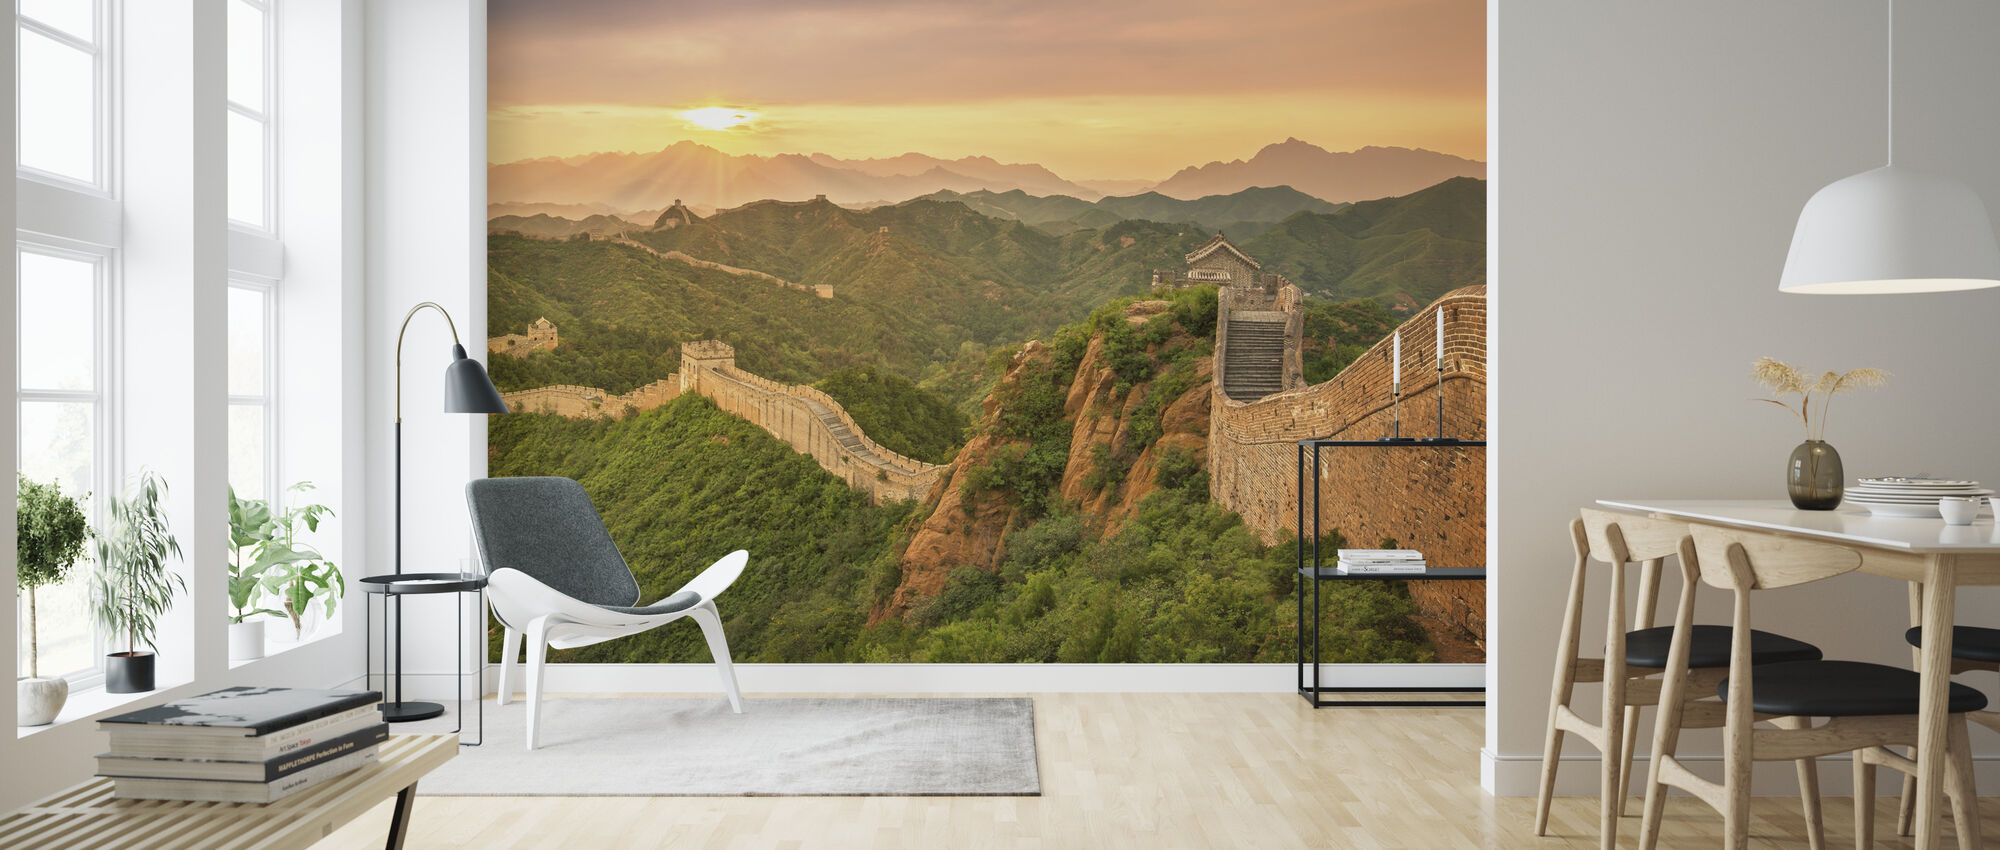 Great Wall of China at Sunrise - Wallpaper - Living Room